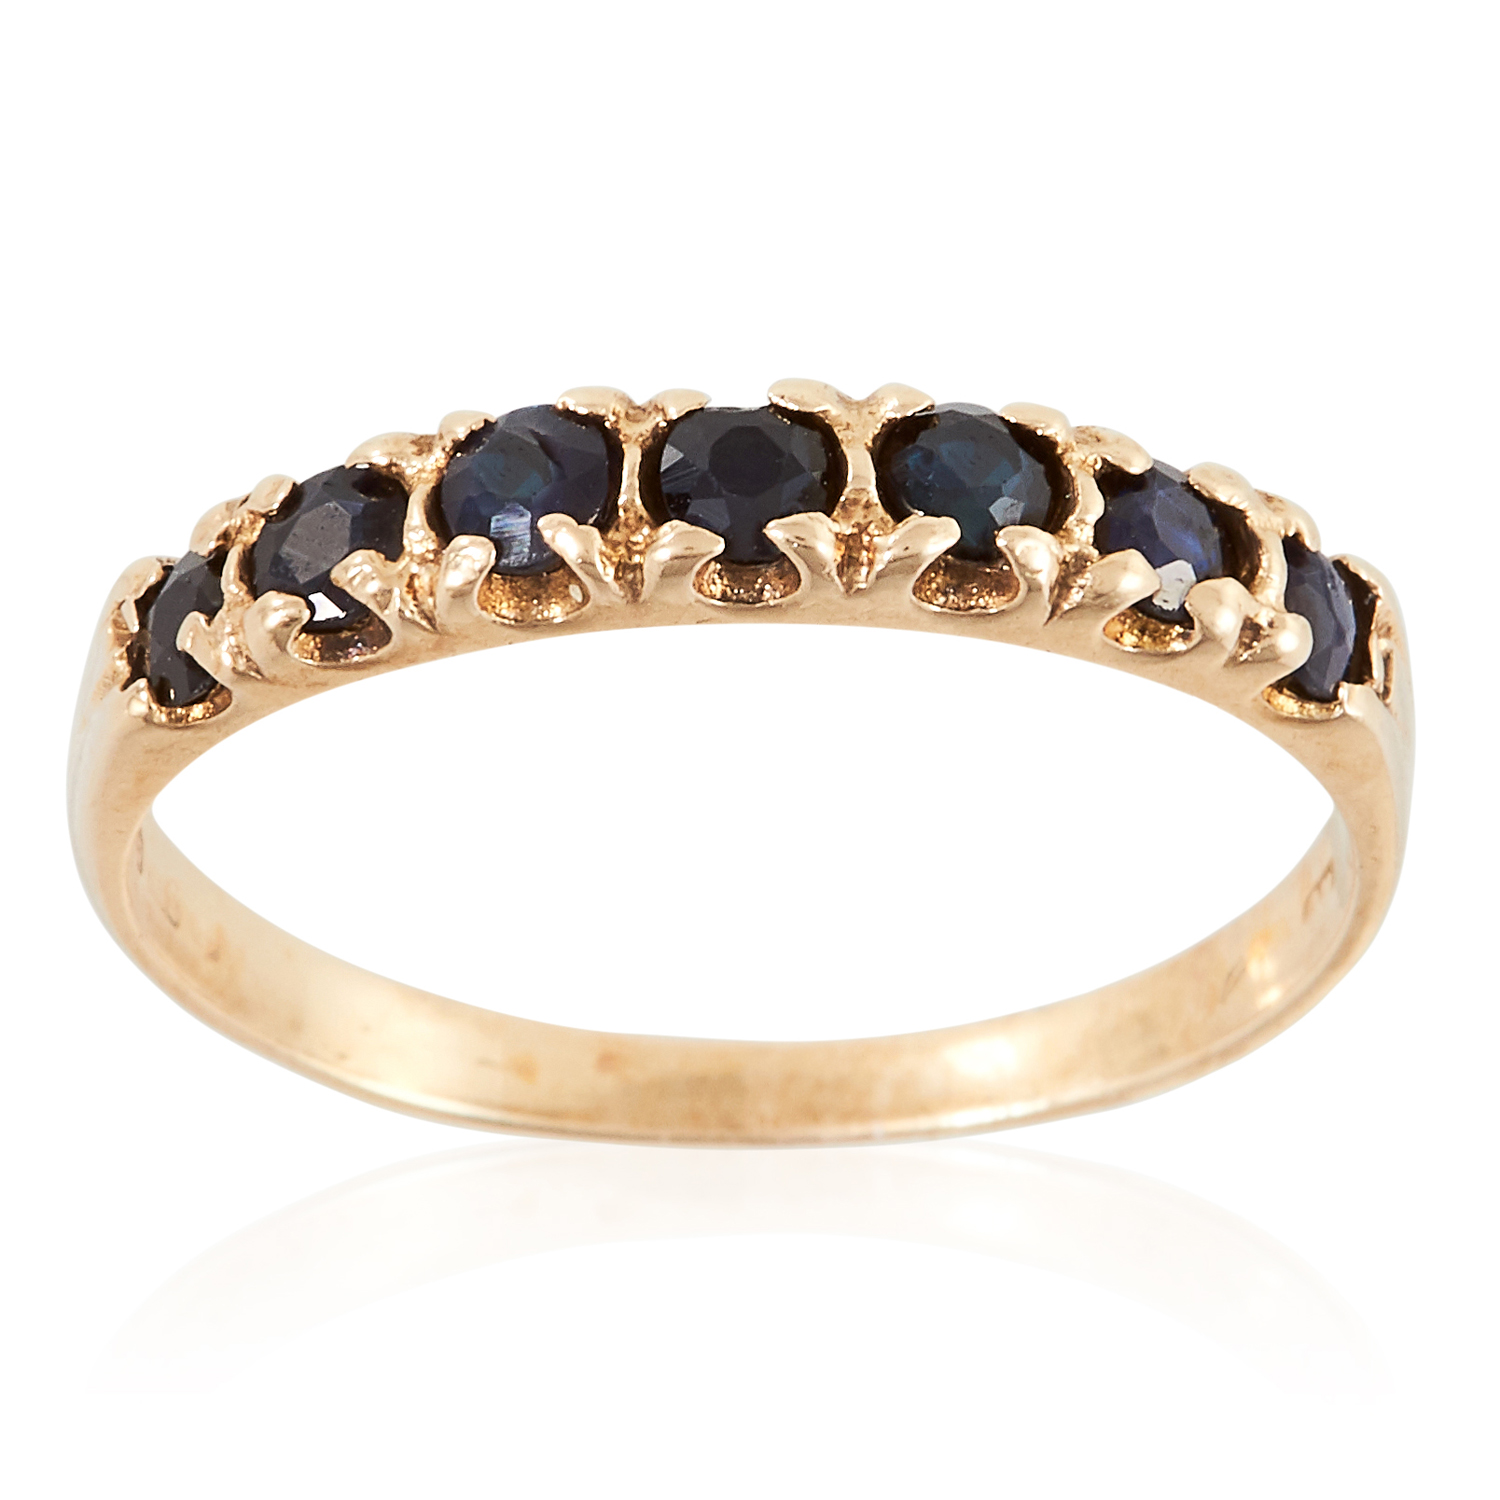 A SAPPHIRE ETERNITY RING in yellow gold, set with seven round cut sapphires, marked indistinctly,